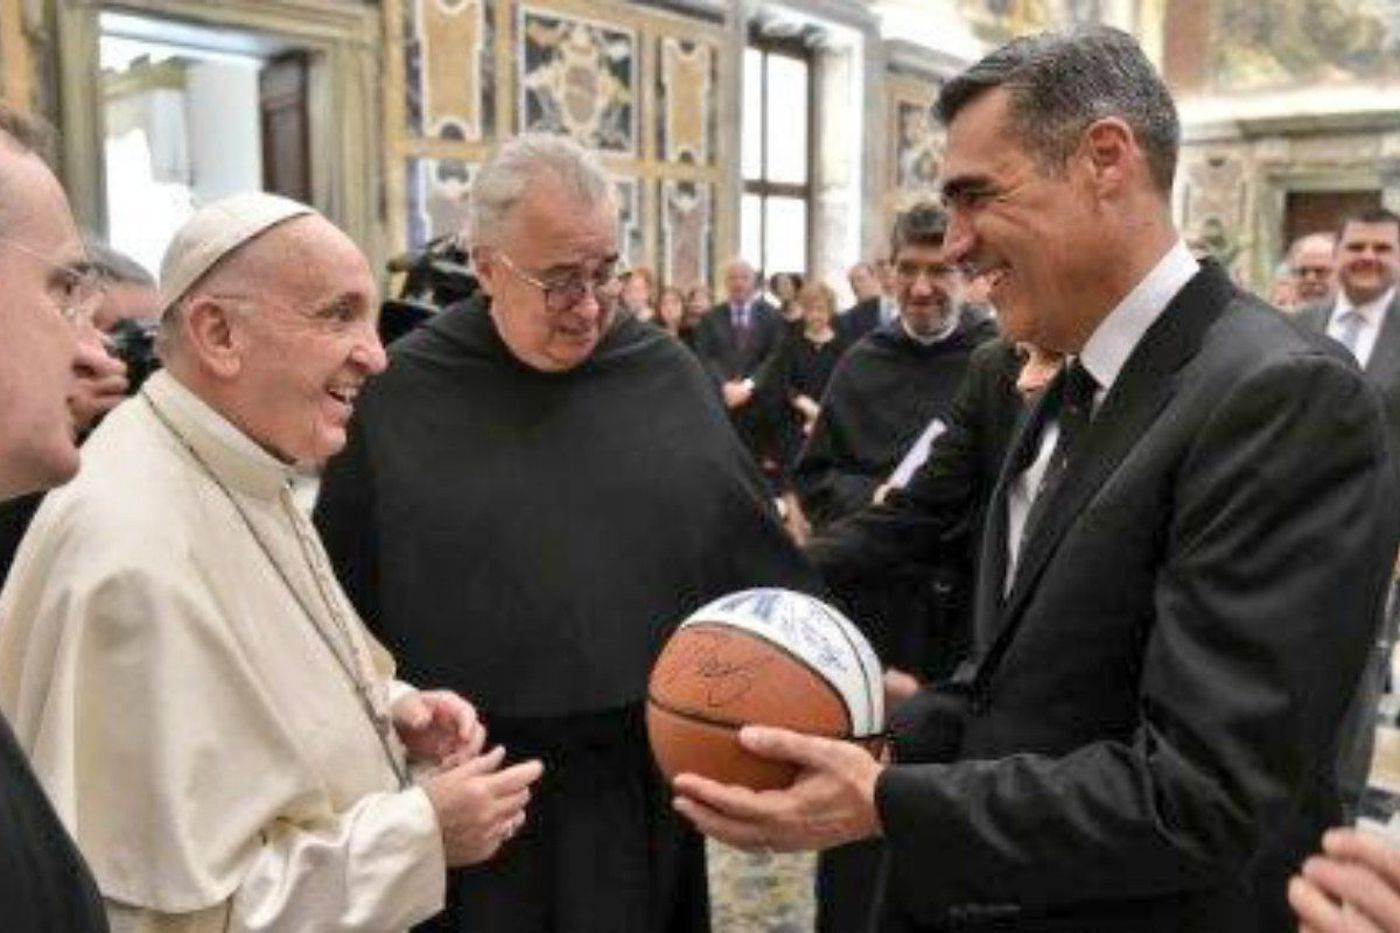 Villanova coach Jay Wright meets with Pope Francis, presents him with an autographed basketball